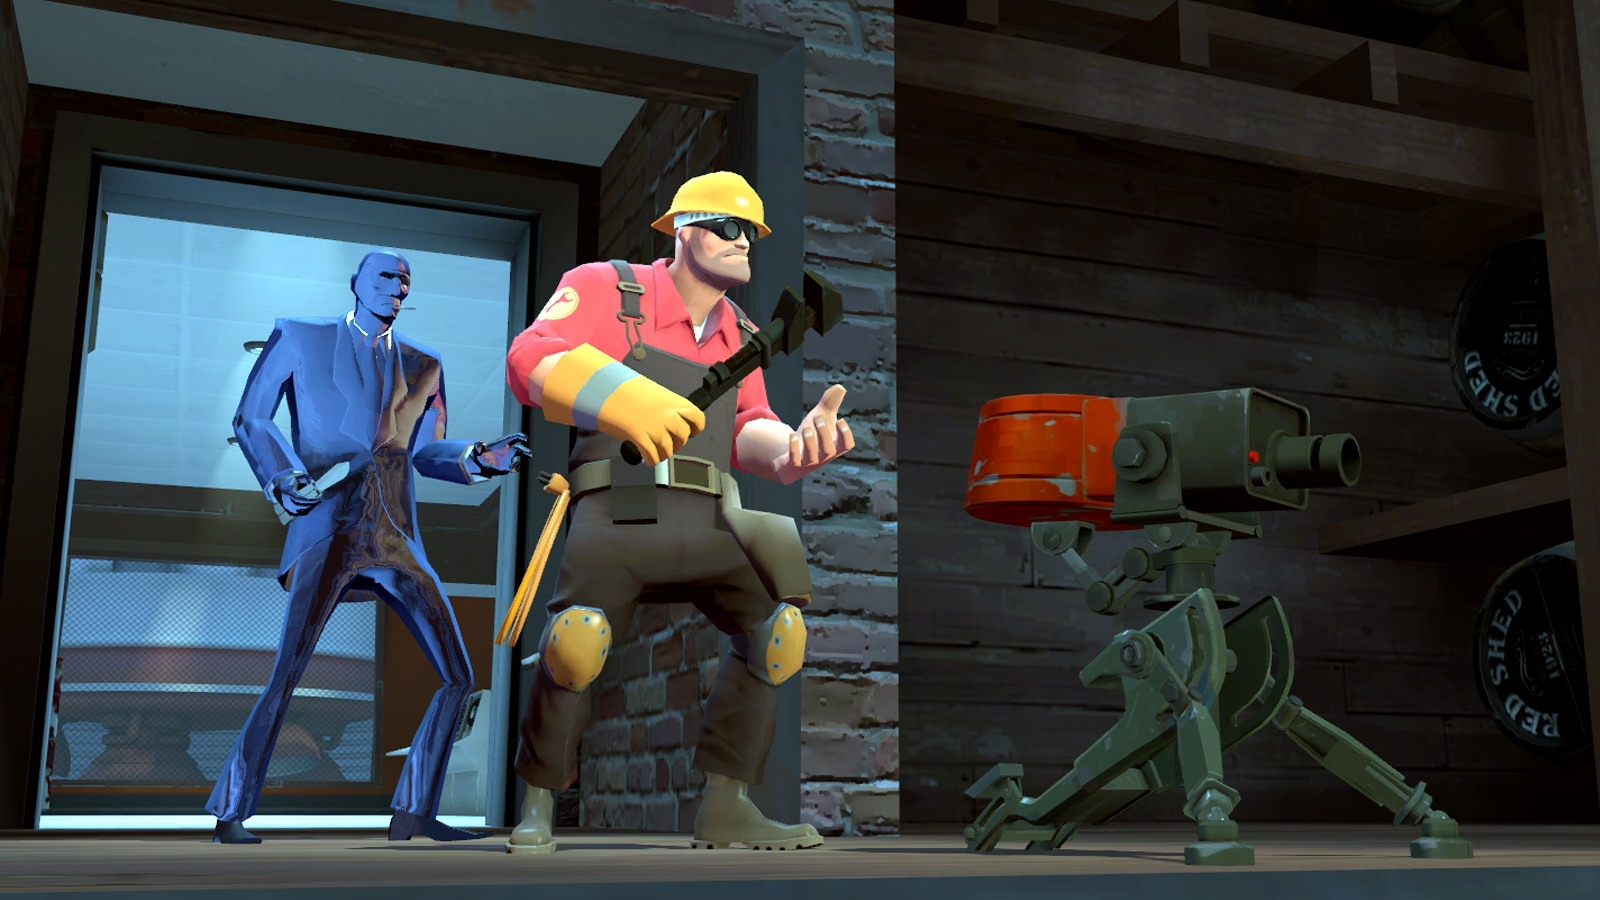 Computerspiel - Team Fortress 2  - Sentry - Spy - Engineer Hintergrundbild